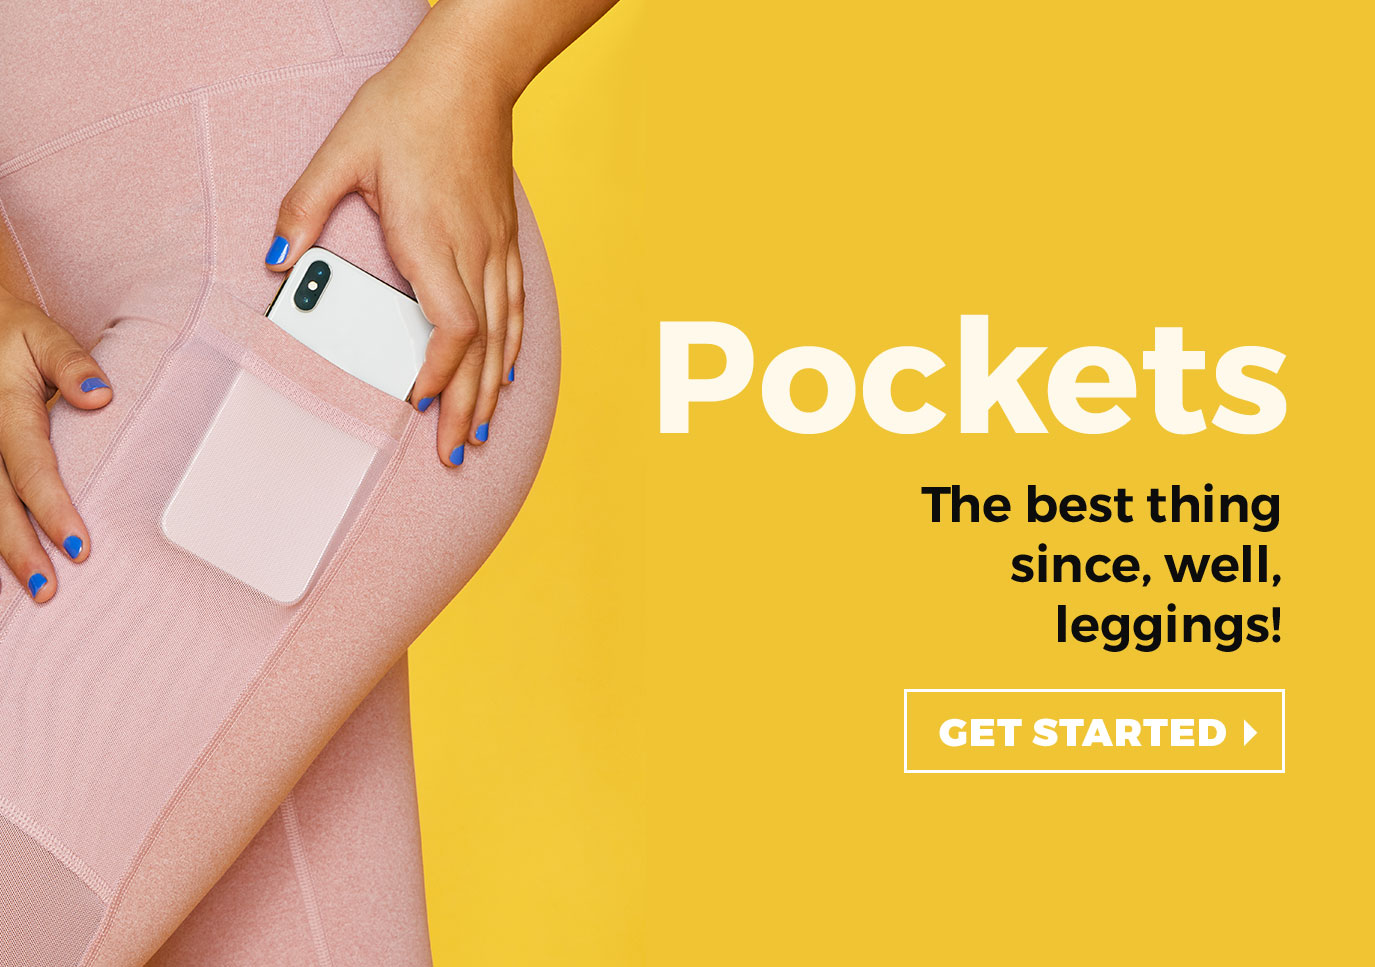 pockets the best thing since well leggings